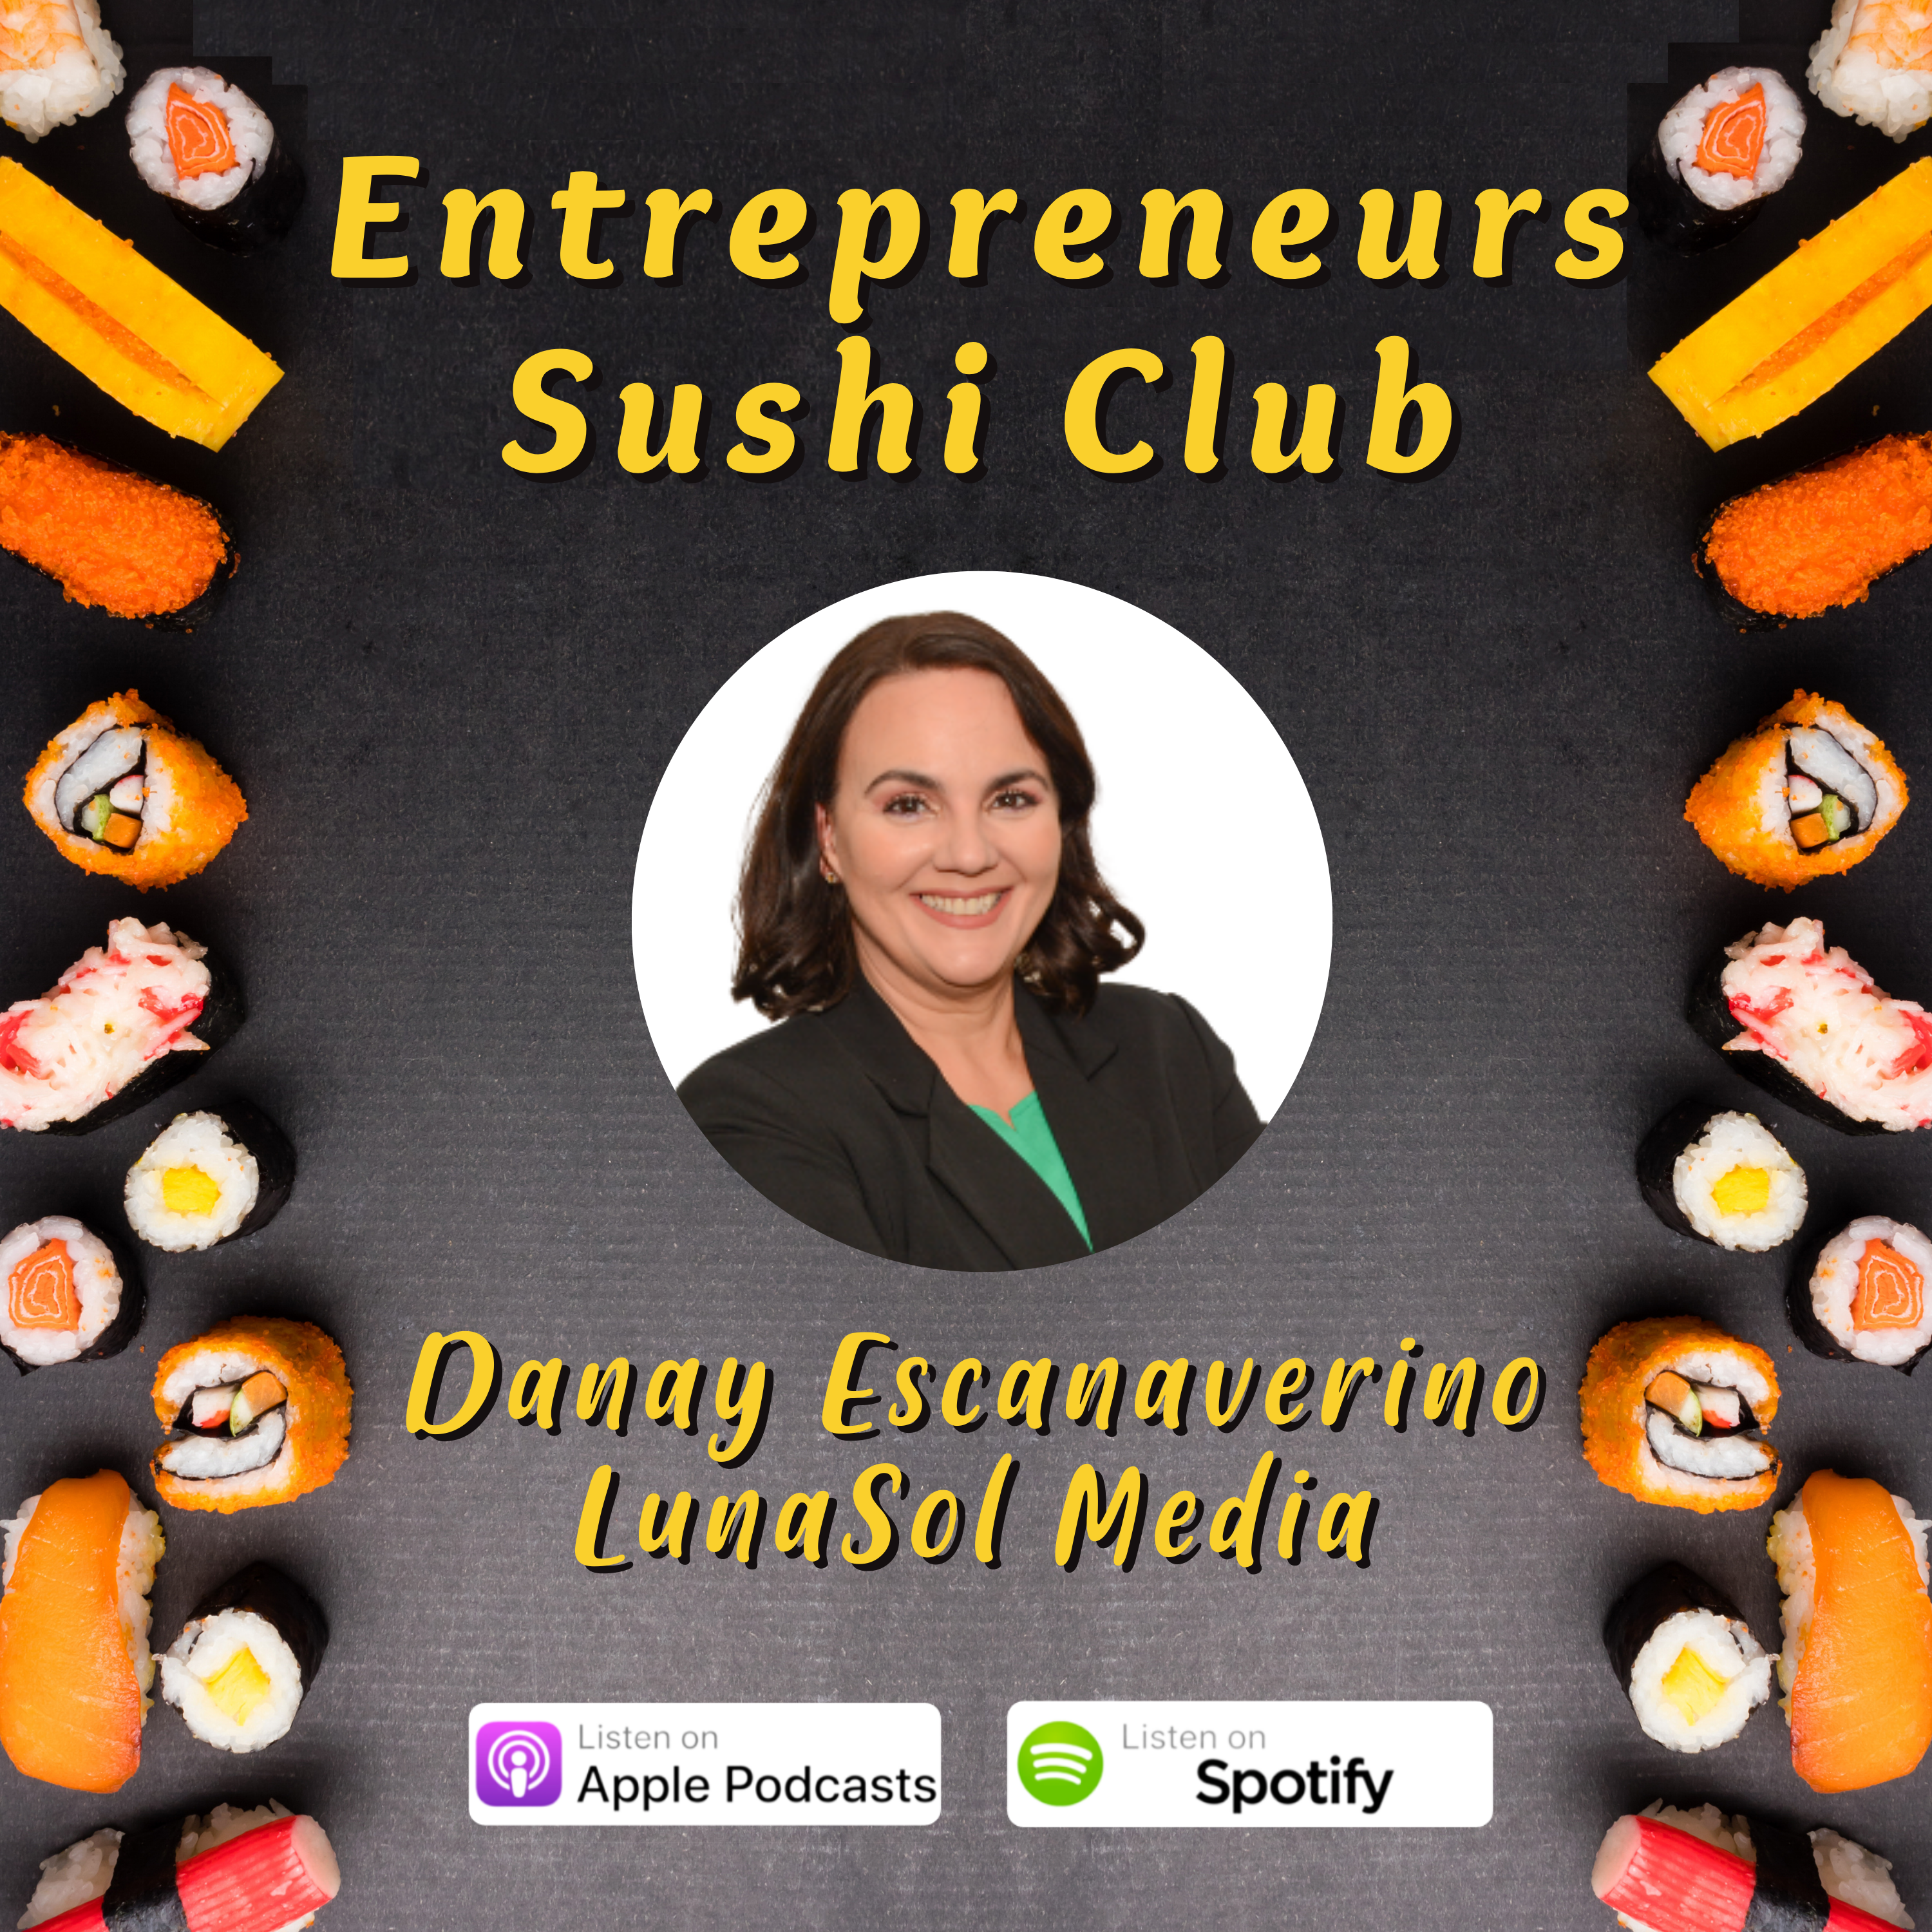 Chatting on the Sushi Entrepreneur Podcast